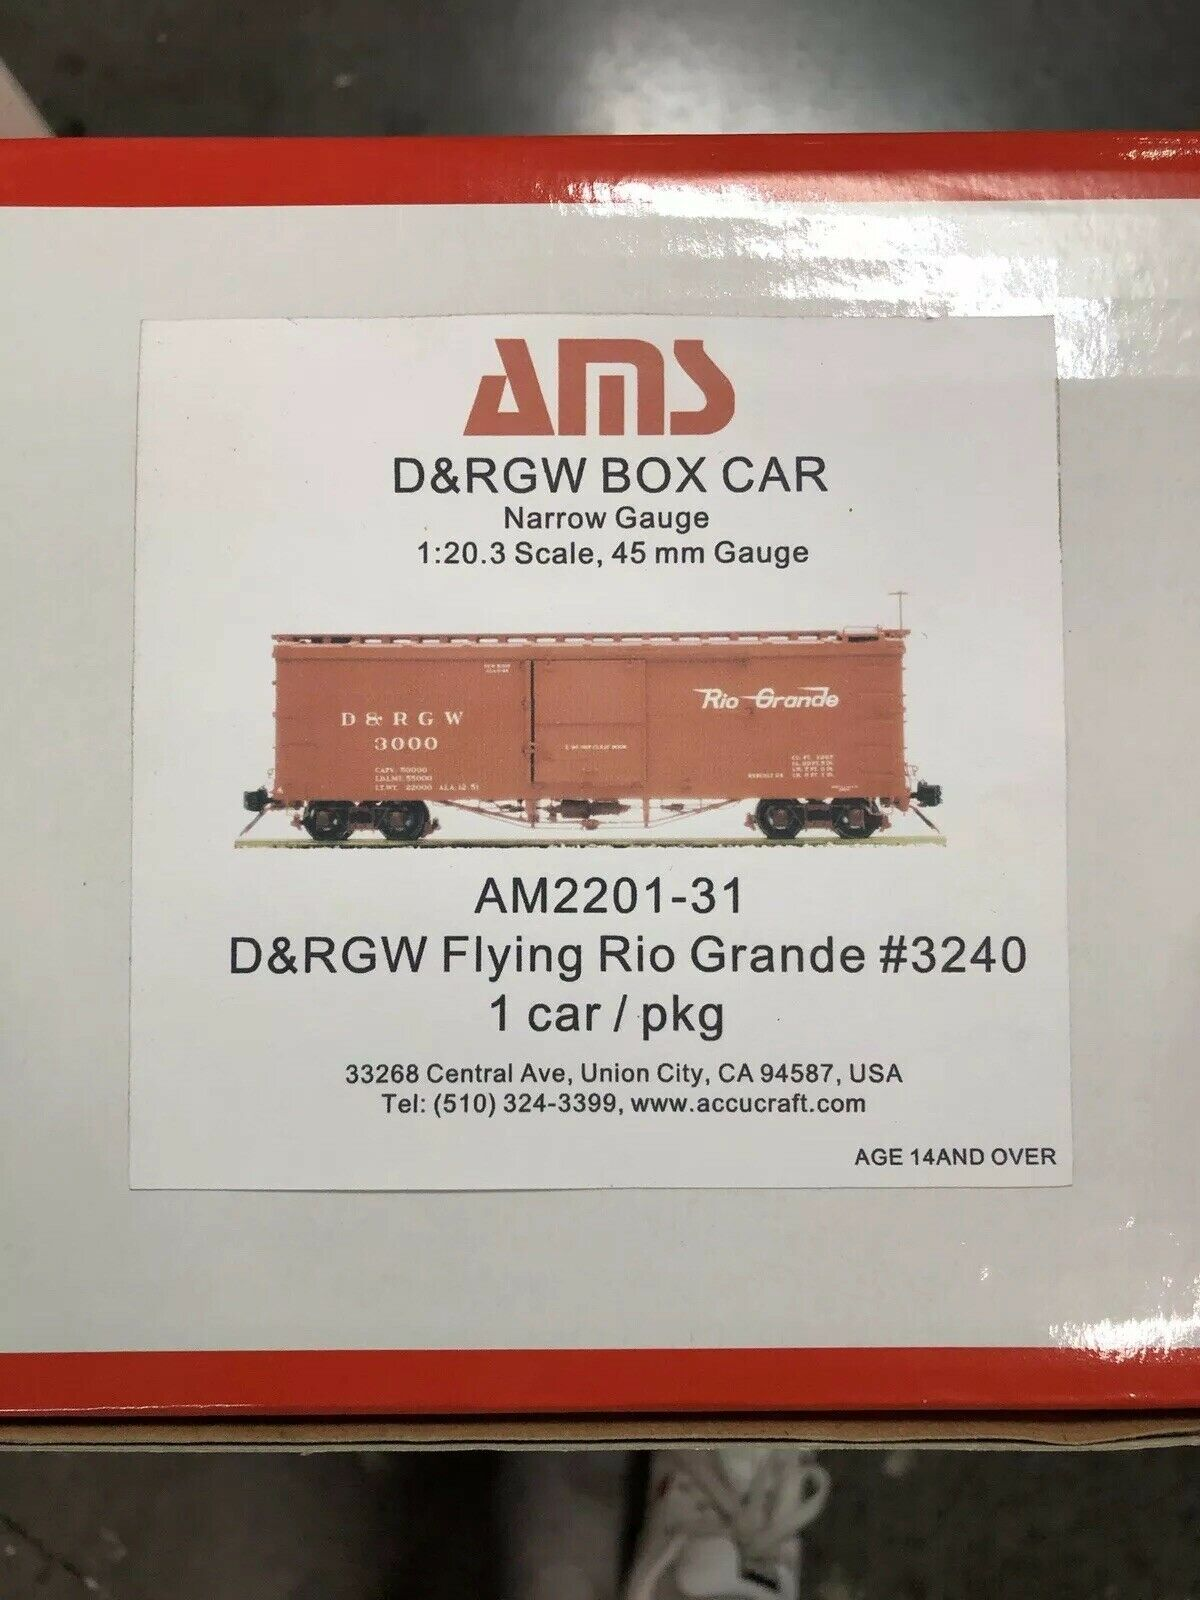 Accucraft 1 20.3  D&RGW Box Car